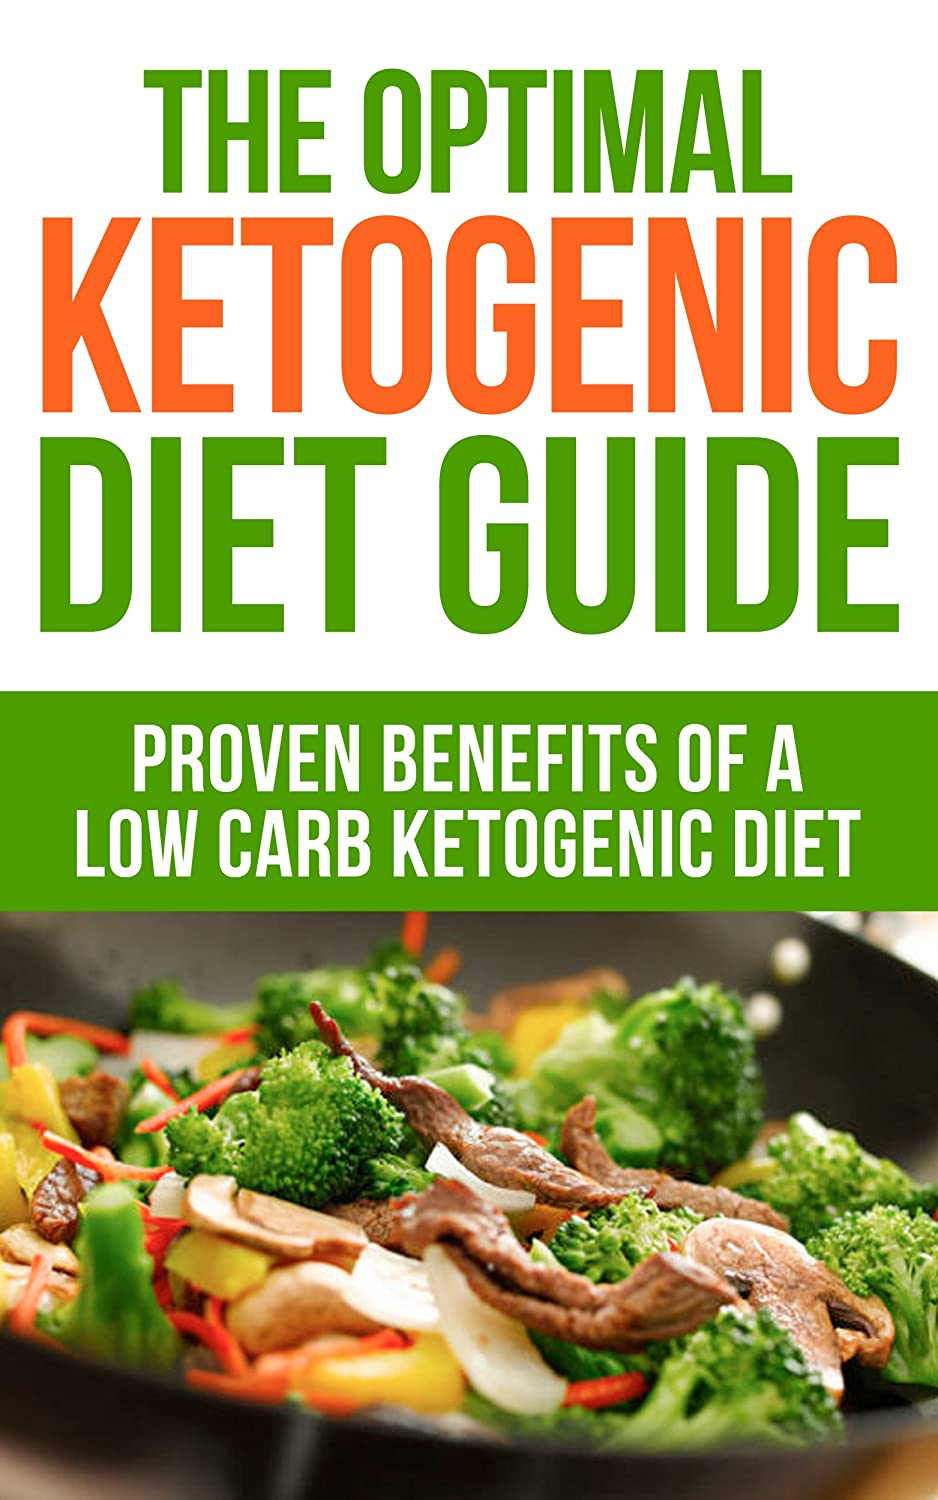 The-Optimal-Ketogenic-Diet